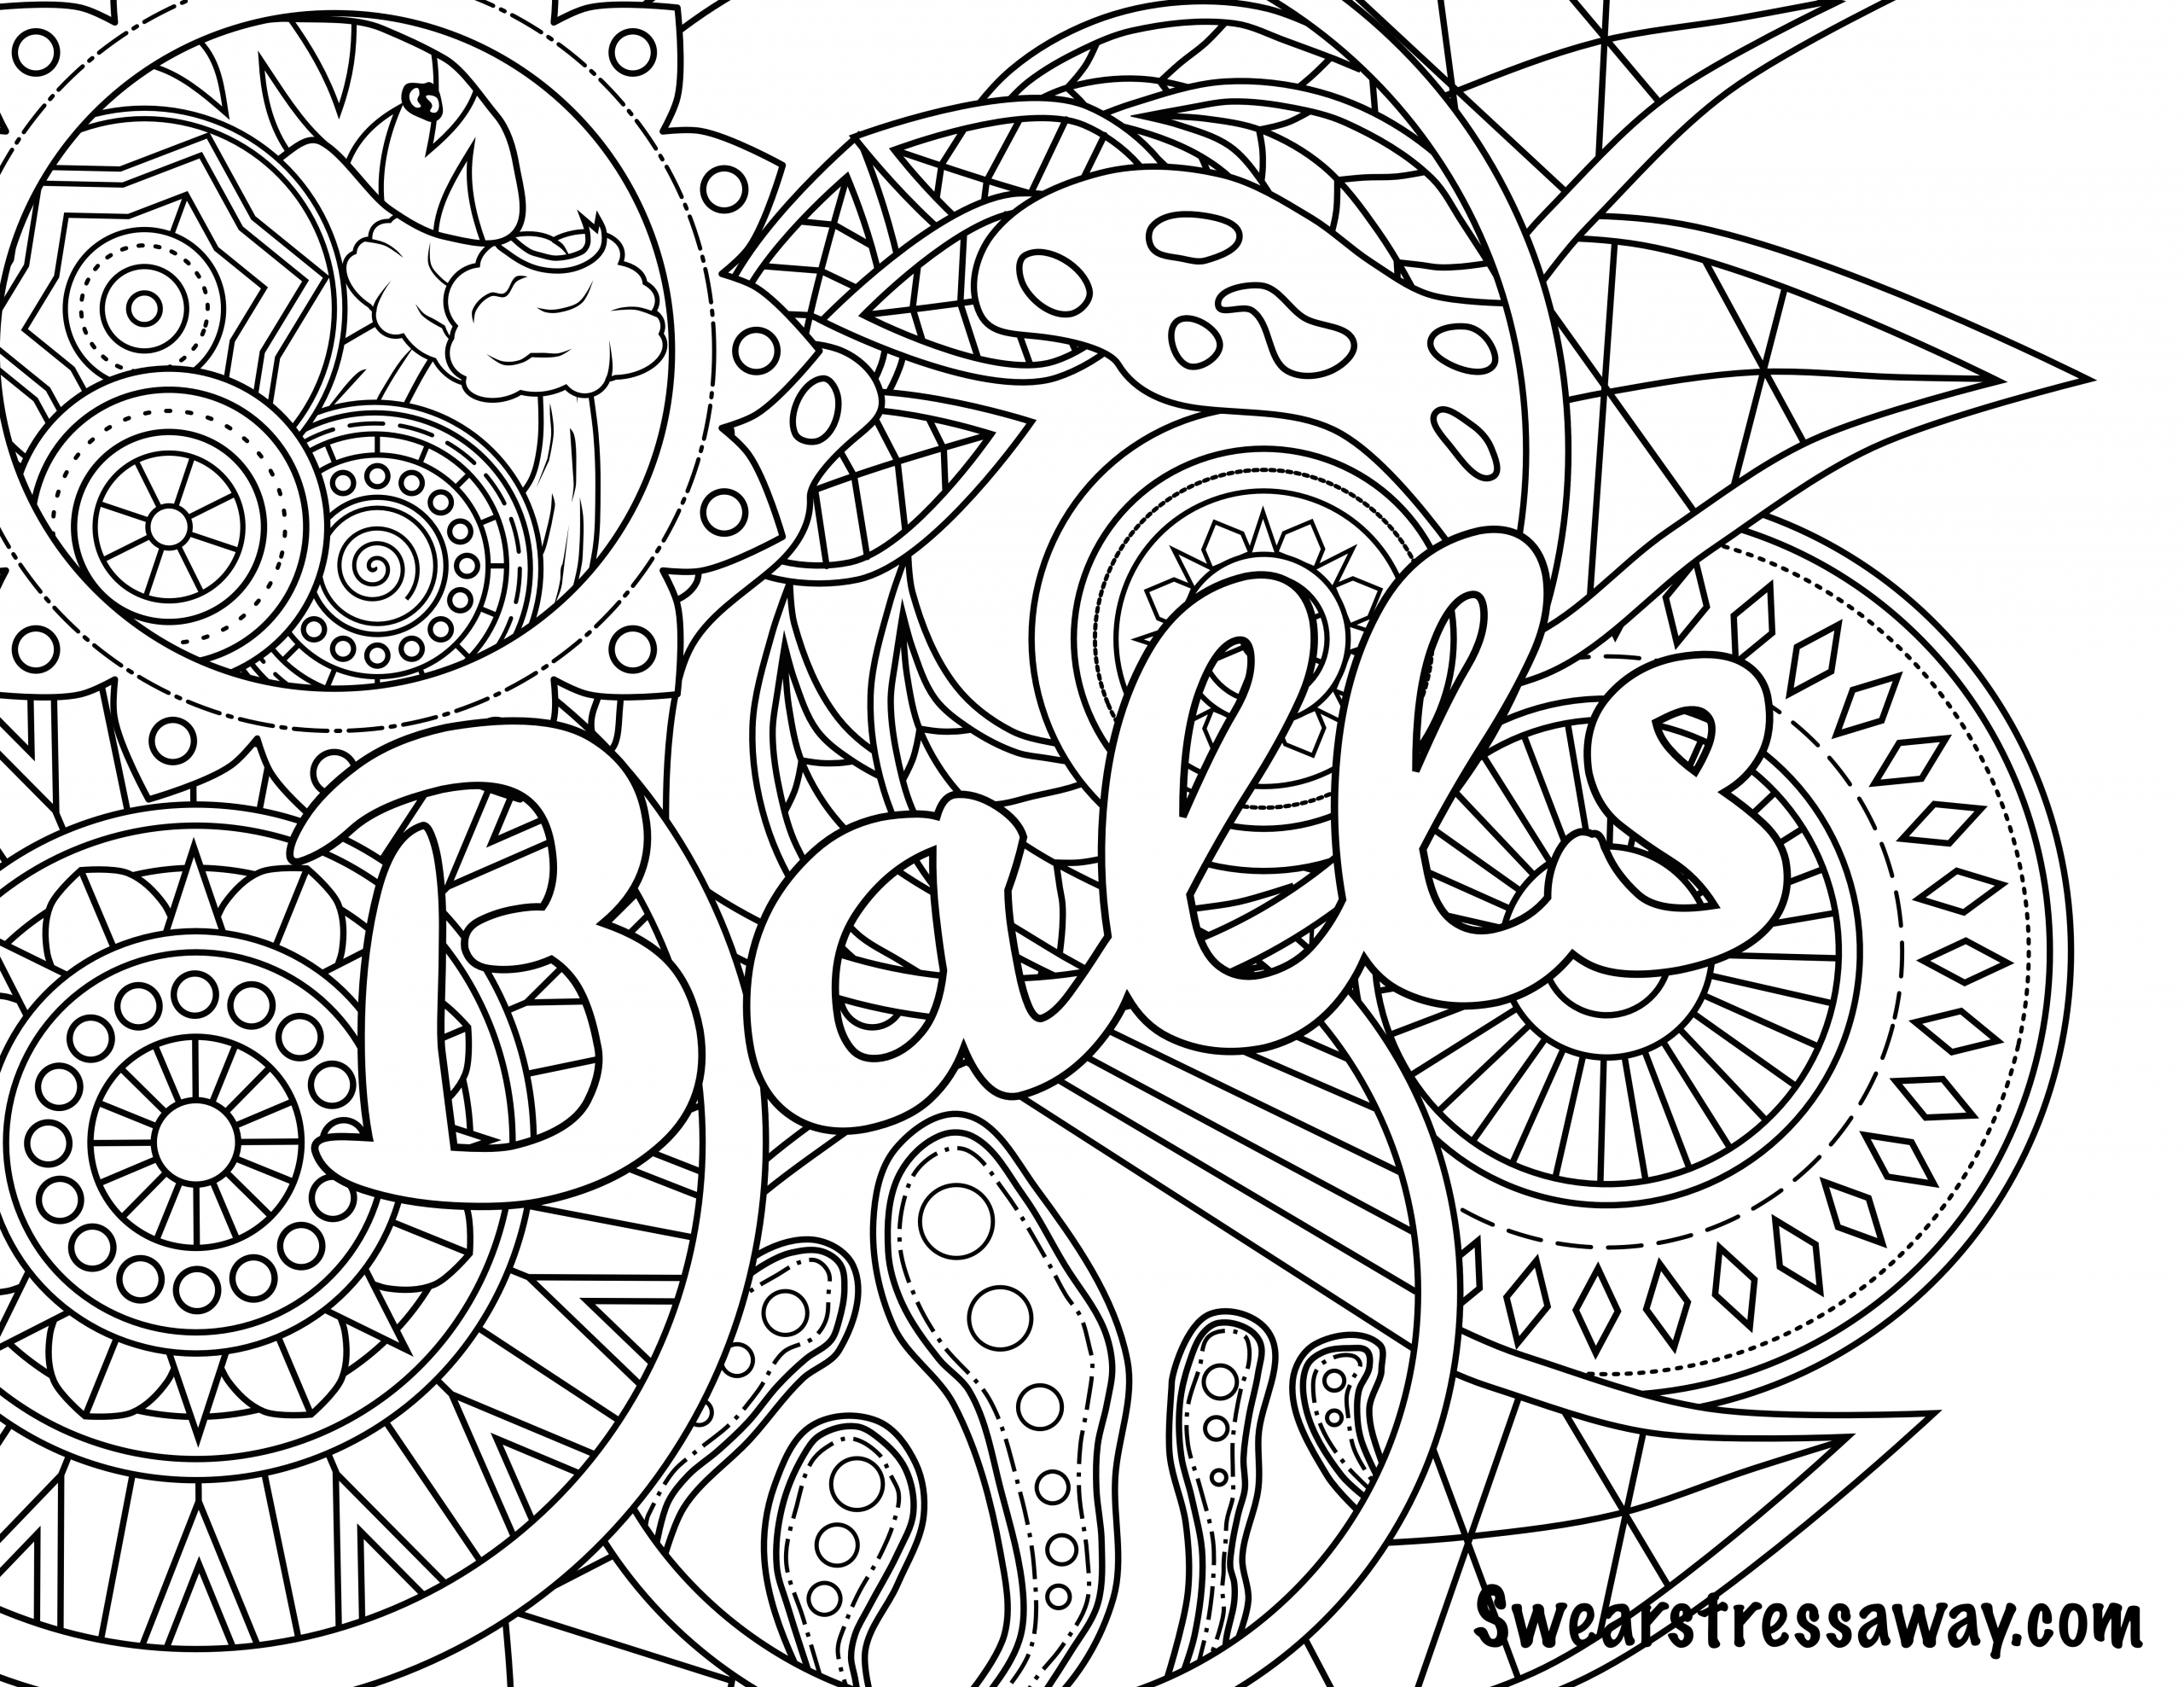 Adult Swear Coloring Pages  The Best Ideas for Coloring Pages for Adults Words Best